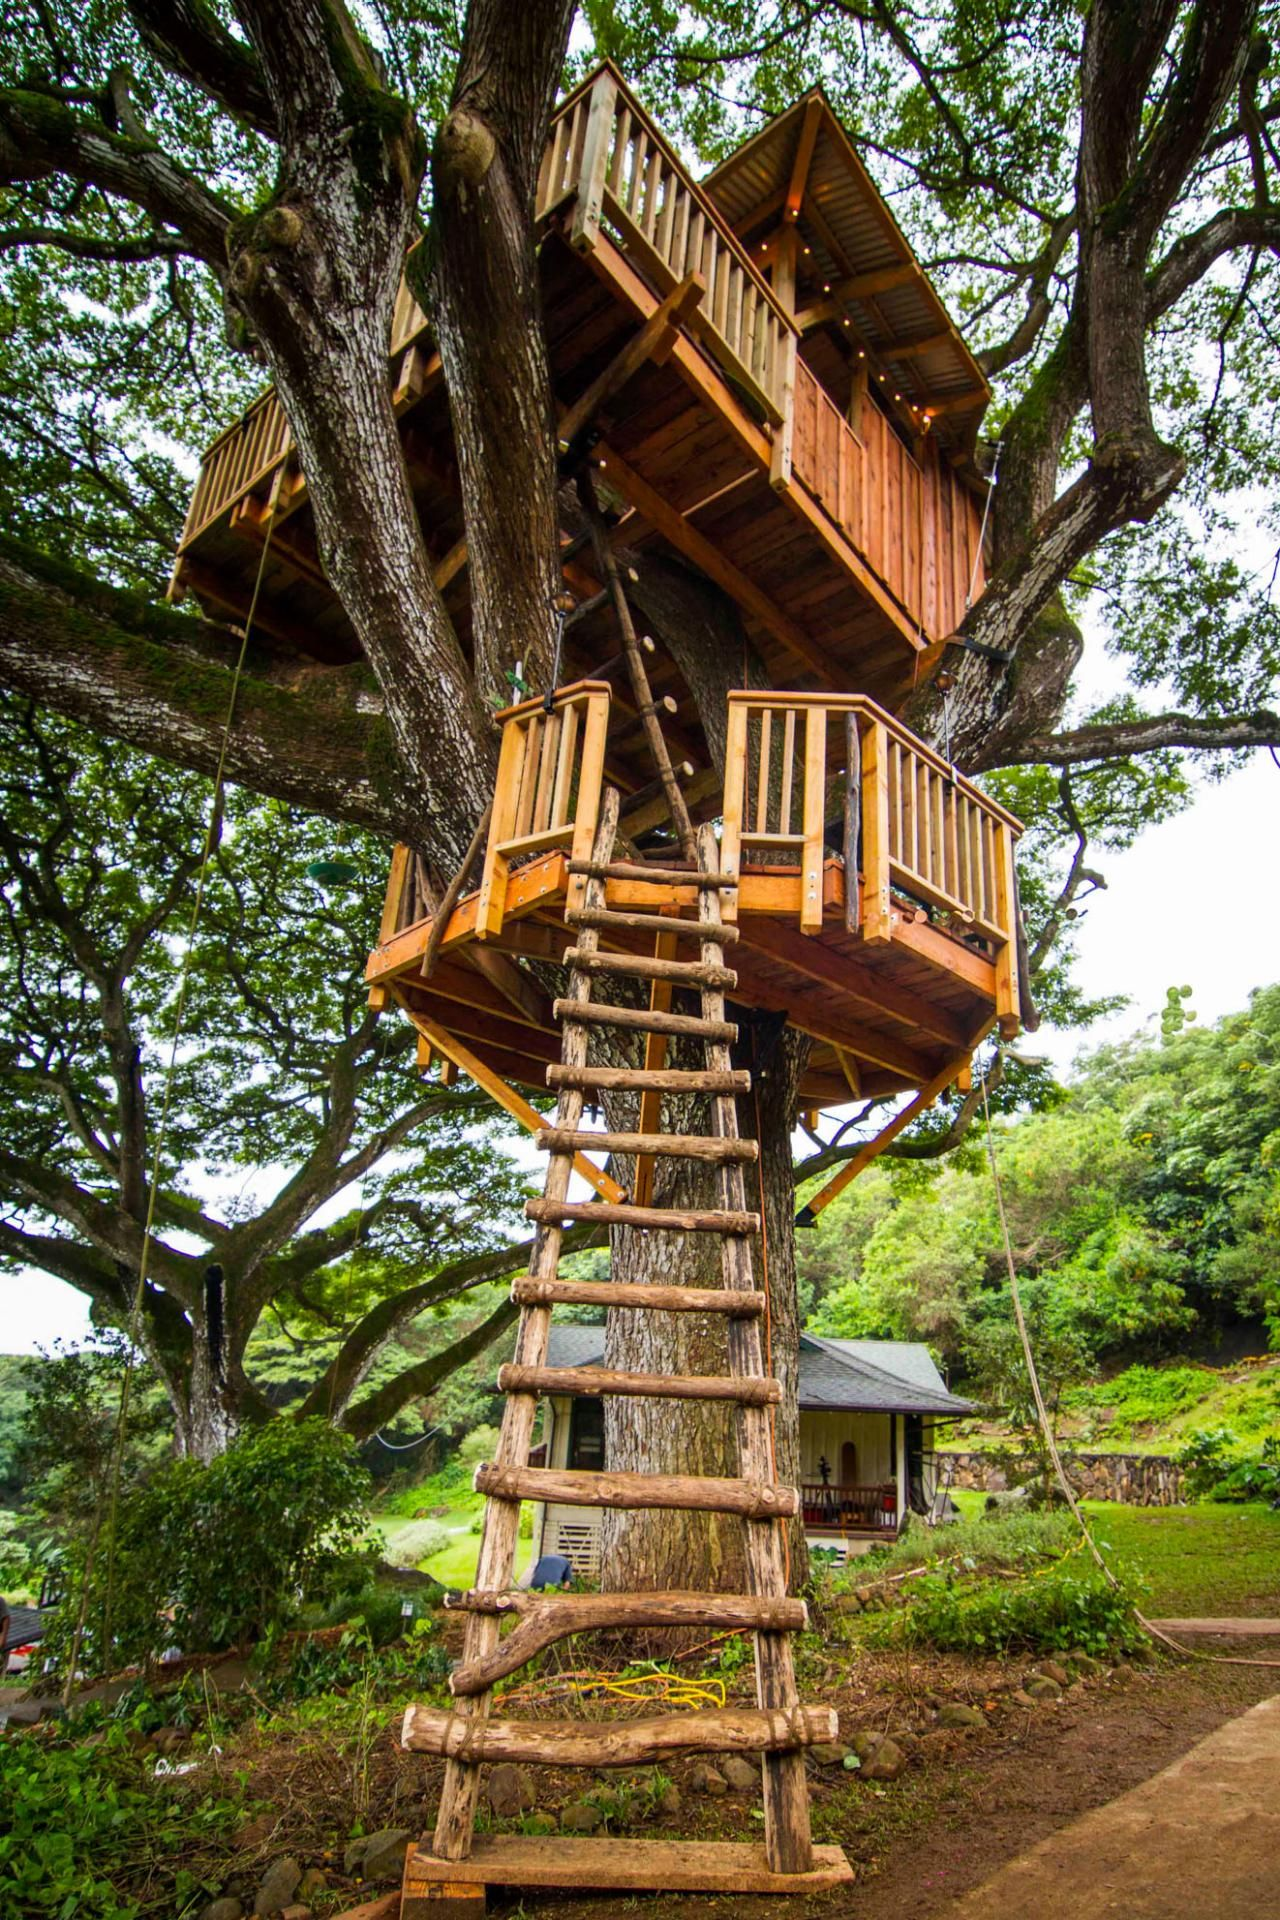 3 Treehouses You Ll Want To Live In From The Treehouse Guys Http Www Diynetwork Com Shows The Treehouse Gu Tree House Diy Tree House Kids Cool Tree Houses